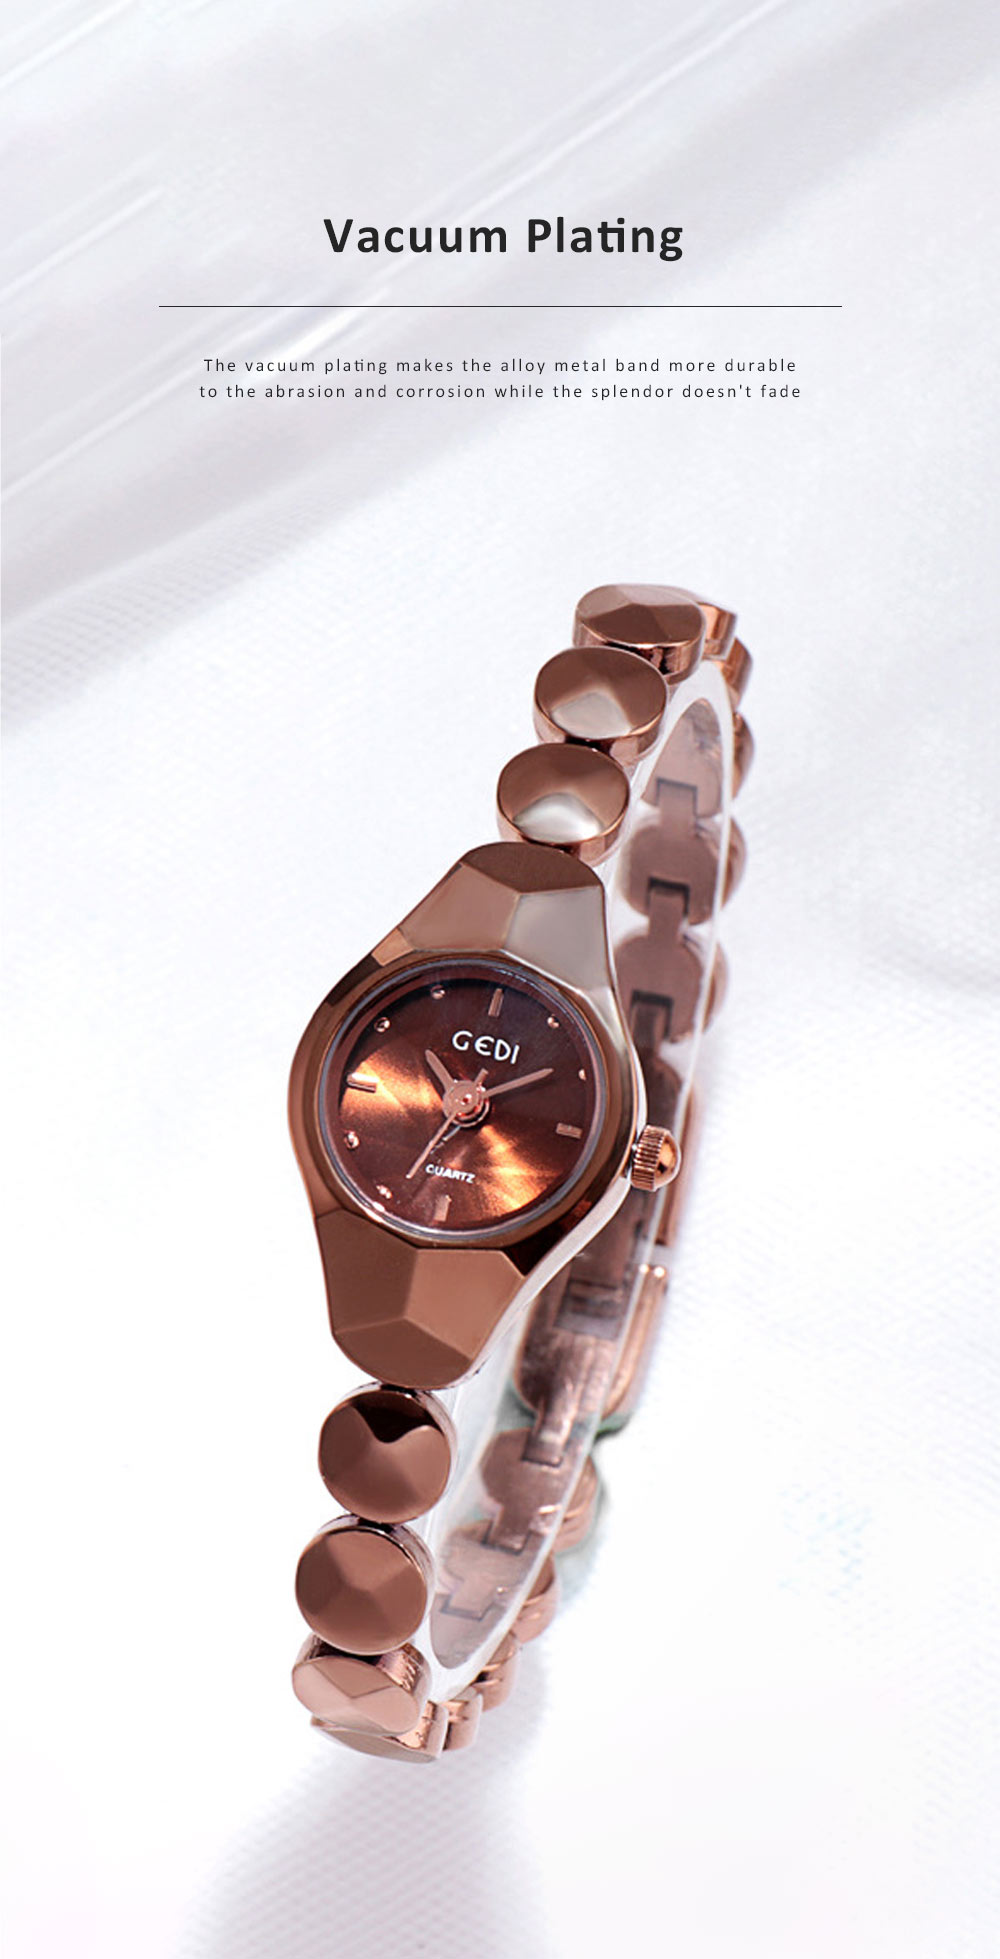 Shiny Hand Watch Bracelet with High Quality Dial Tungsten Steel Fashionable Quartz Wrist Watch for Ladies 4